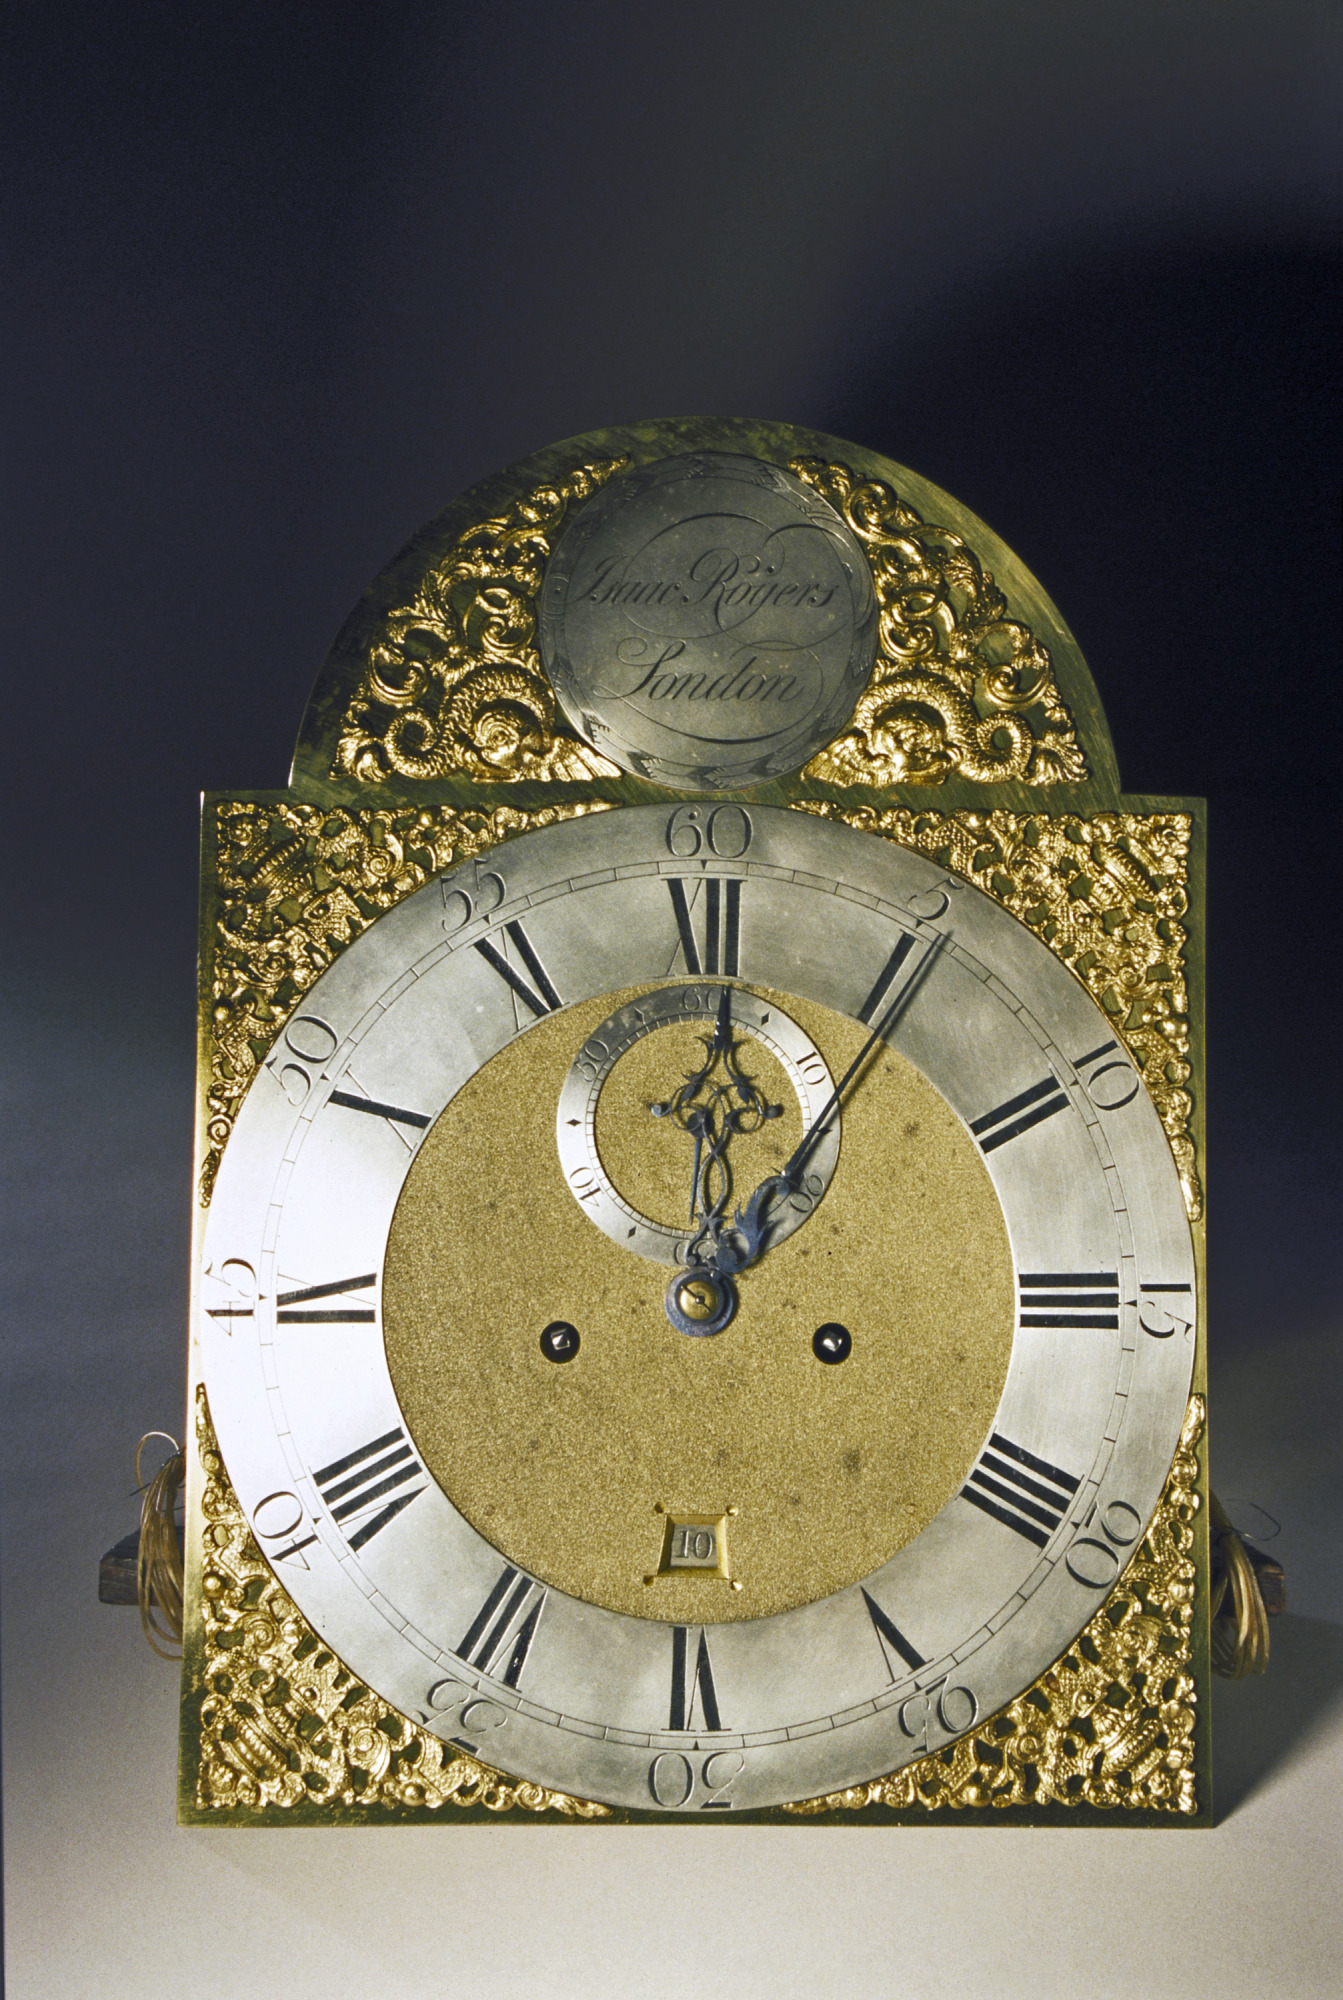 images for Tall Clock Case with Blue-lacquer Case, about 1760